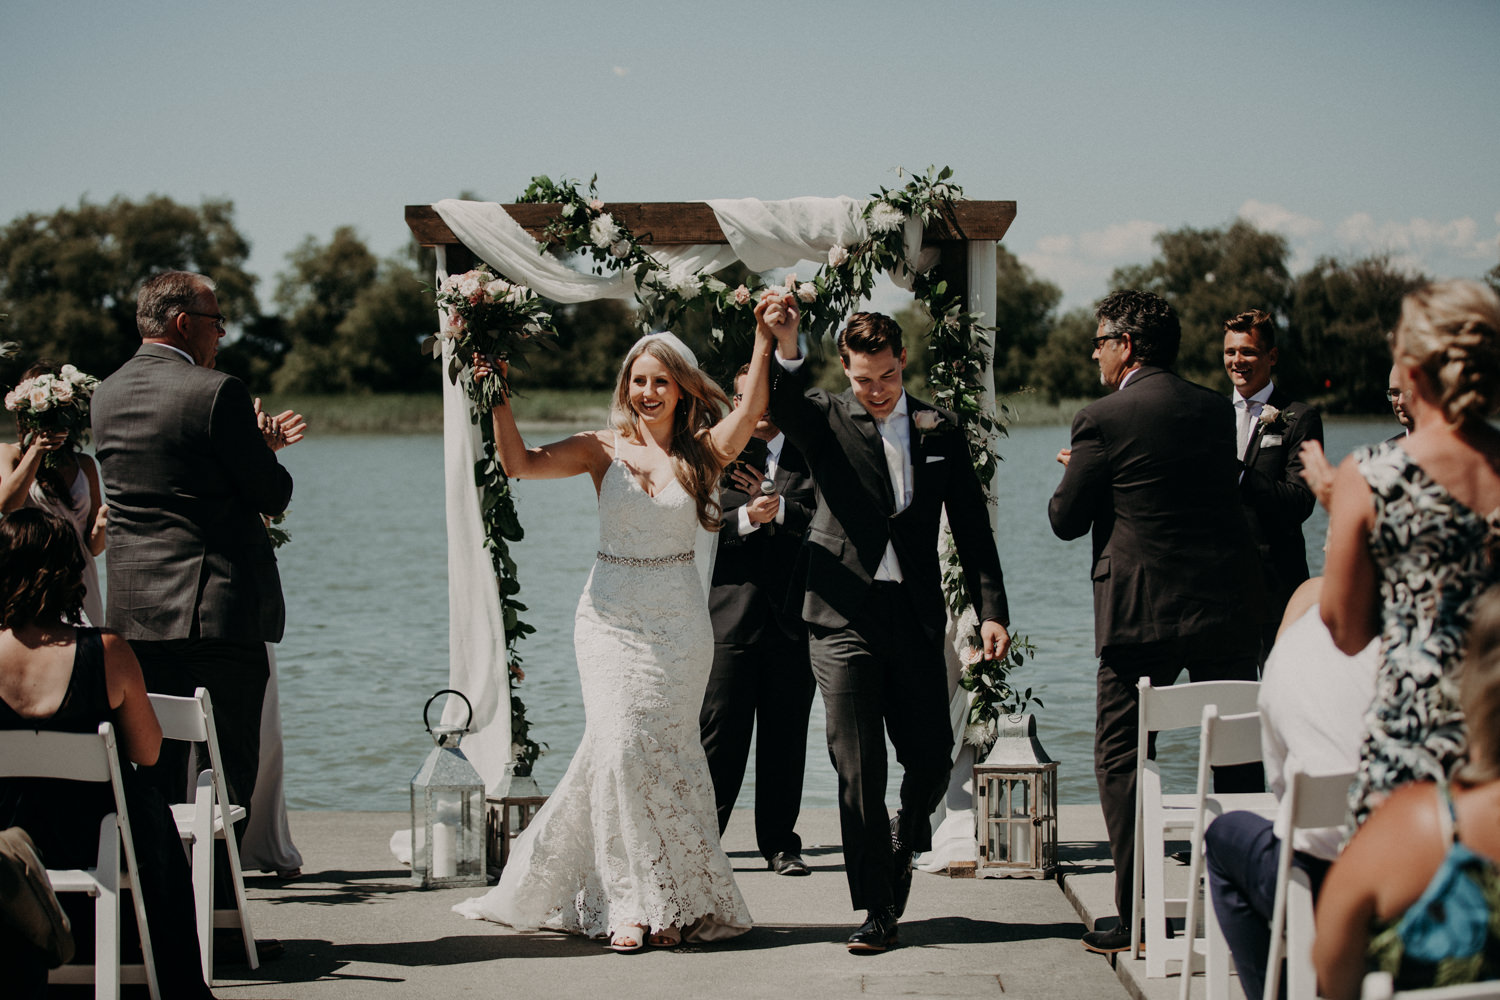 The bride and groom celebrate as they exit their ceremony at the UBC boathouse in Richmond, BC.